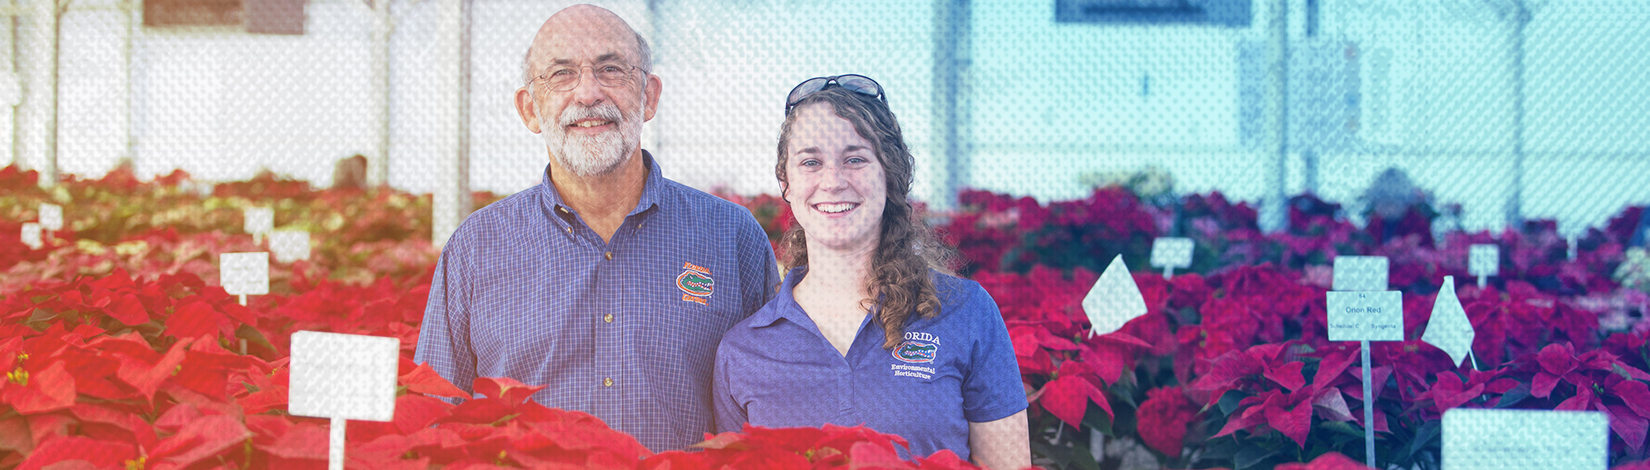 Horticulture student poses with a professor in a greenhouse full of poinsettias.